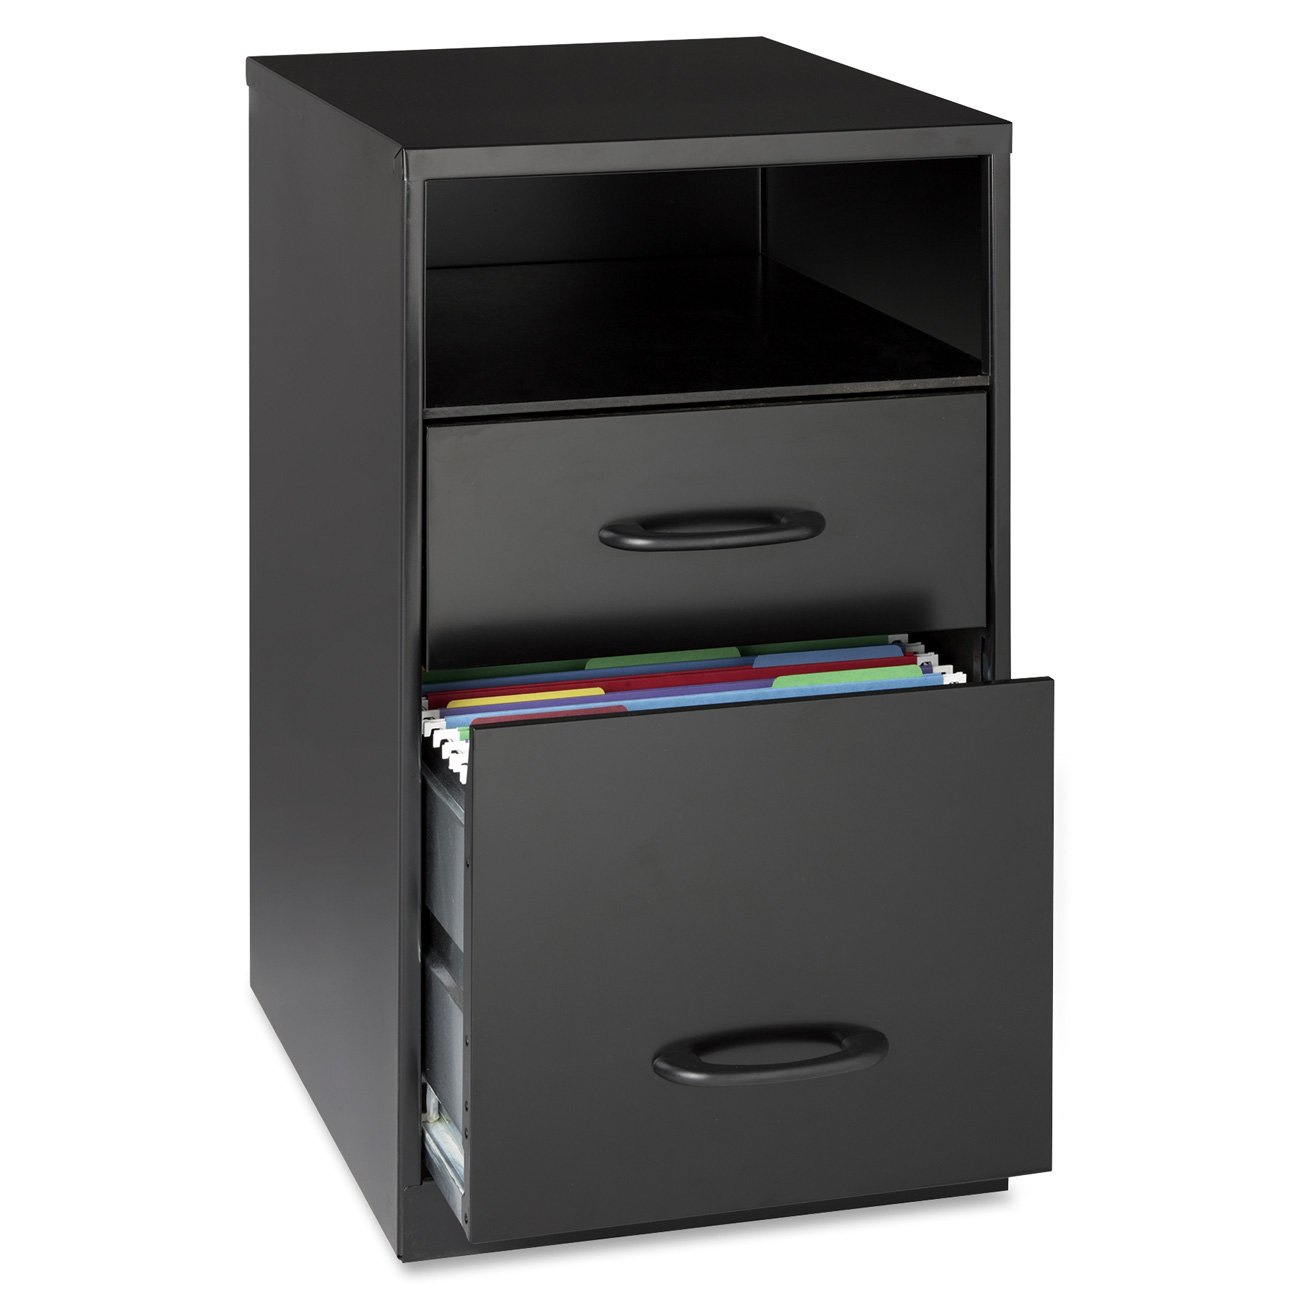 Amazon.com Lorell 18505 2-Drawer Mobile File Cabinet with Shelf 18-Inch Home u0026 Kitchen  sc 1 st  Amazon.com & Amazon.com: Lorell 18505 2-Drawer Mobile File Cabinet with Shelf 18 ...